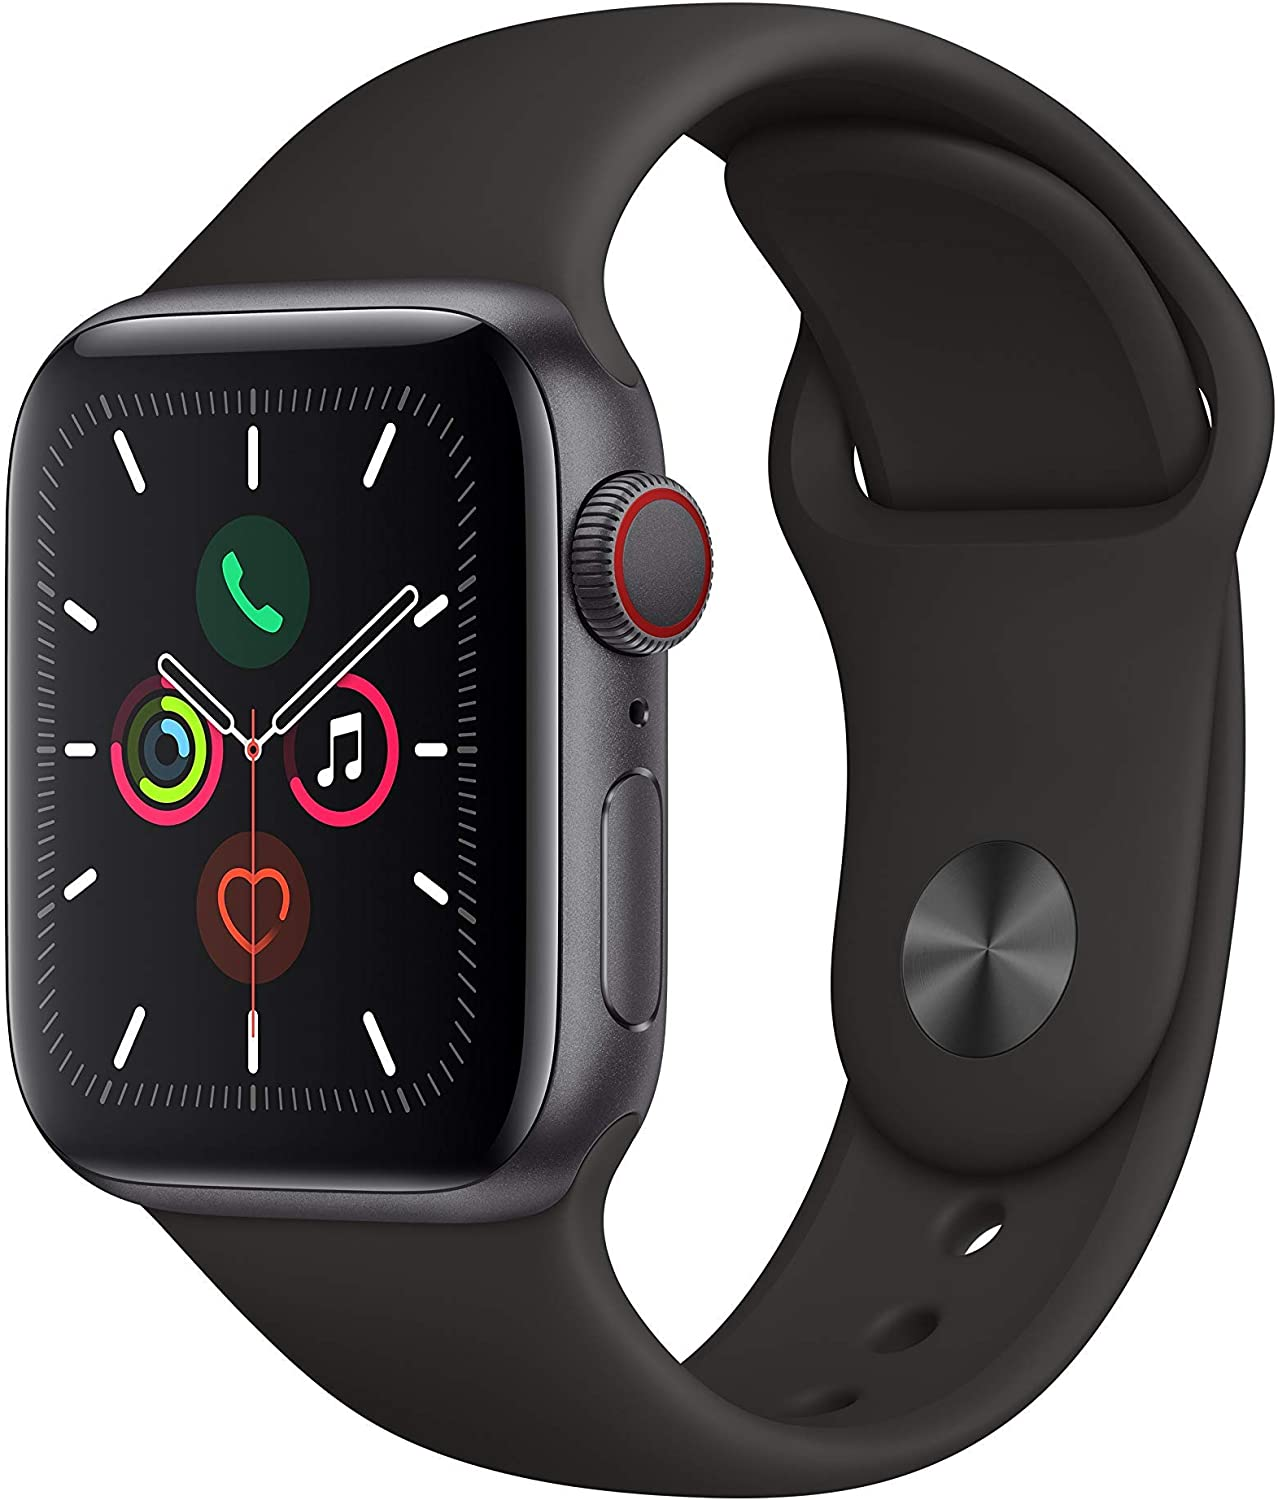 Apple Watch Series 5 (GPS+Cellular, 40mm) - Space Gray Aluminum Case with Black Sport Band (Renewed)